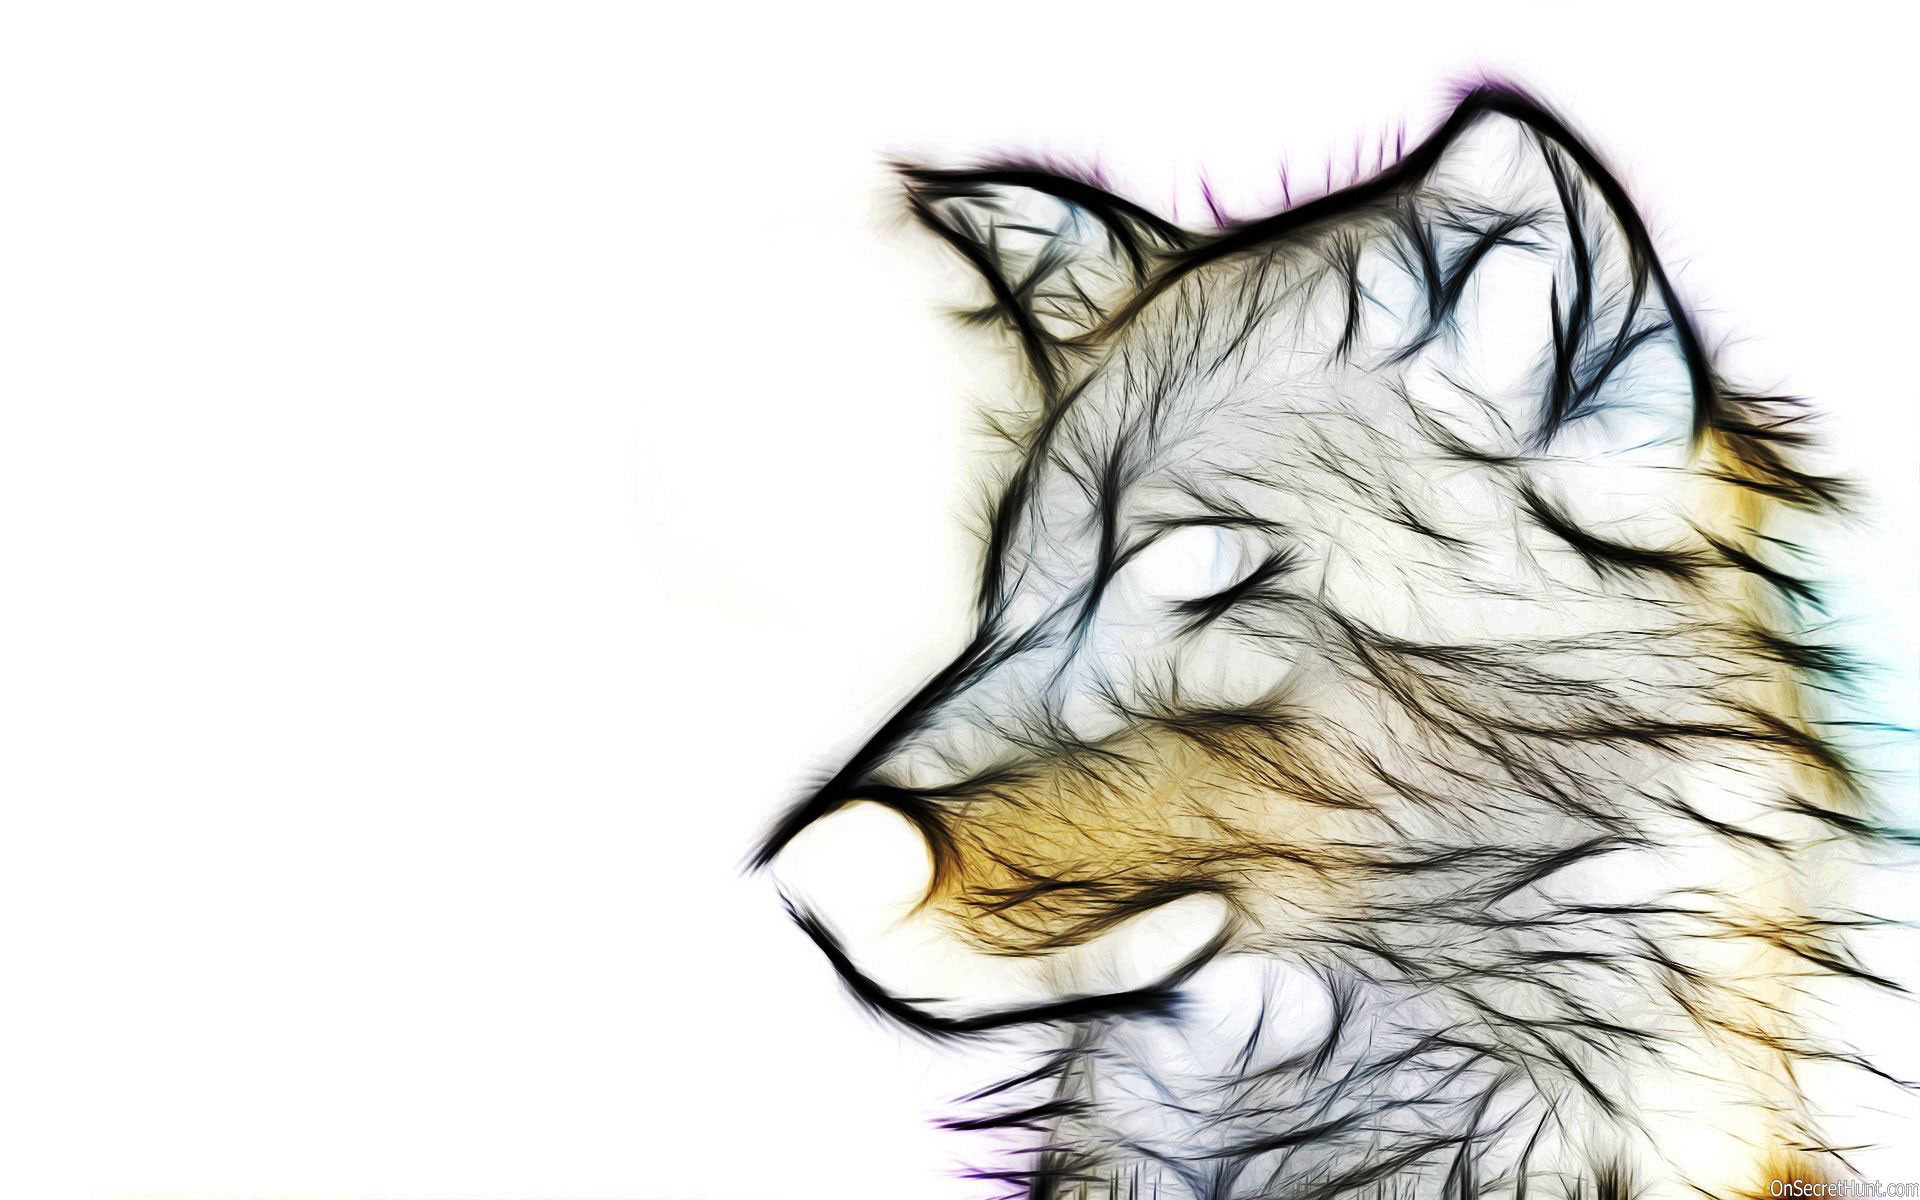 Res: 1920x1200, 3d animal wallpaper hd-Wolf Wallpaper